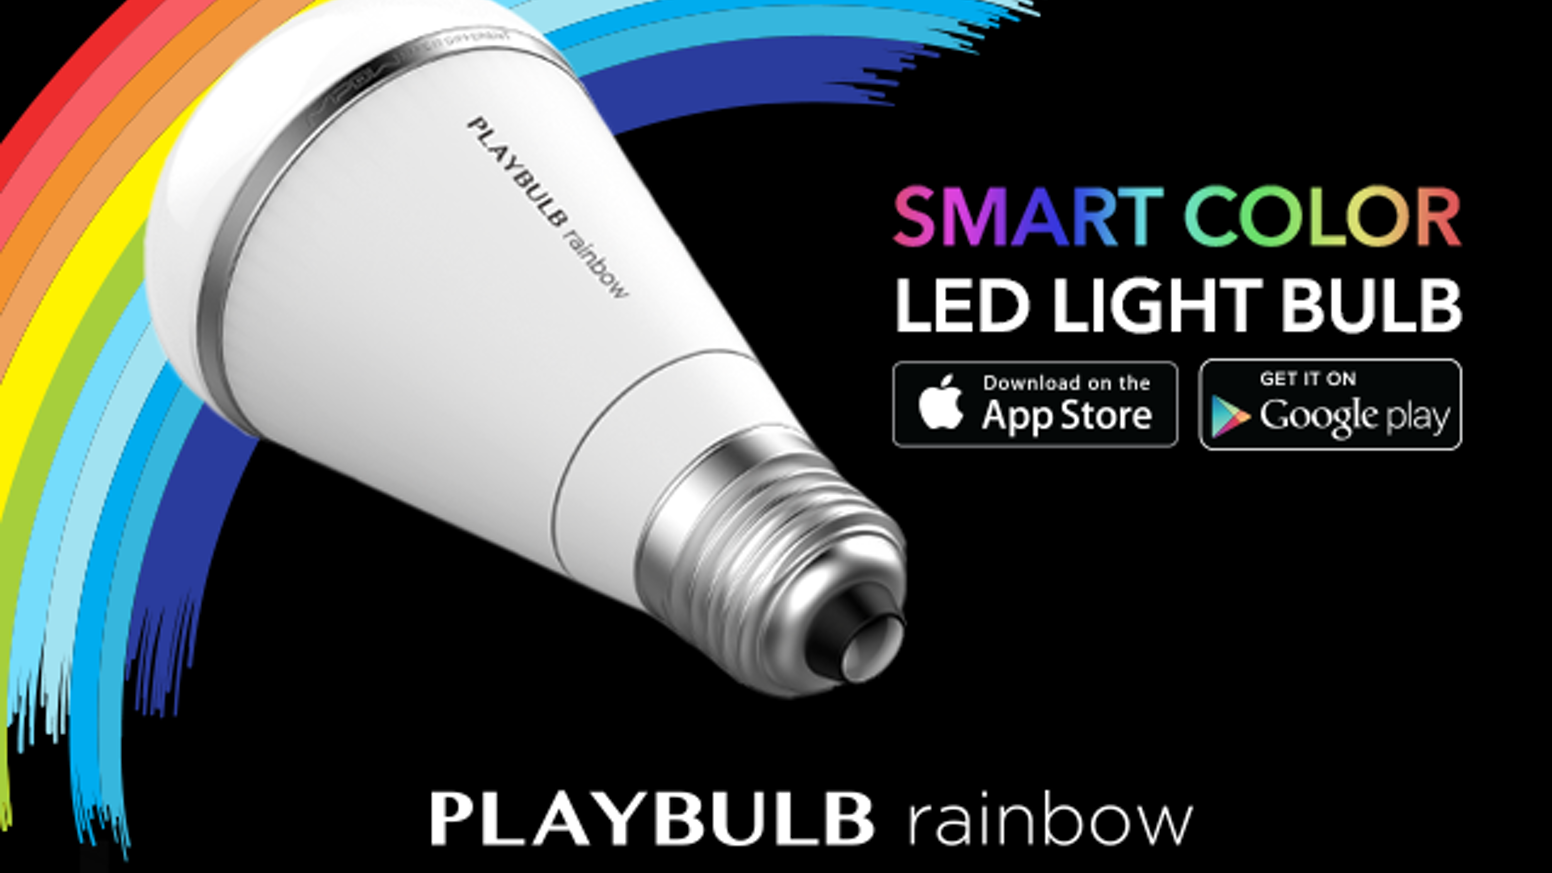 PLAYBULB rainbow is a Stylish, Smart & Money Saving color LED Light Bulb with Mobile App Control. Paint a rainbow at your home.